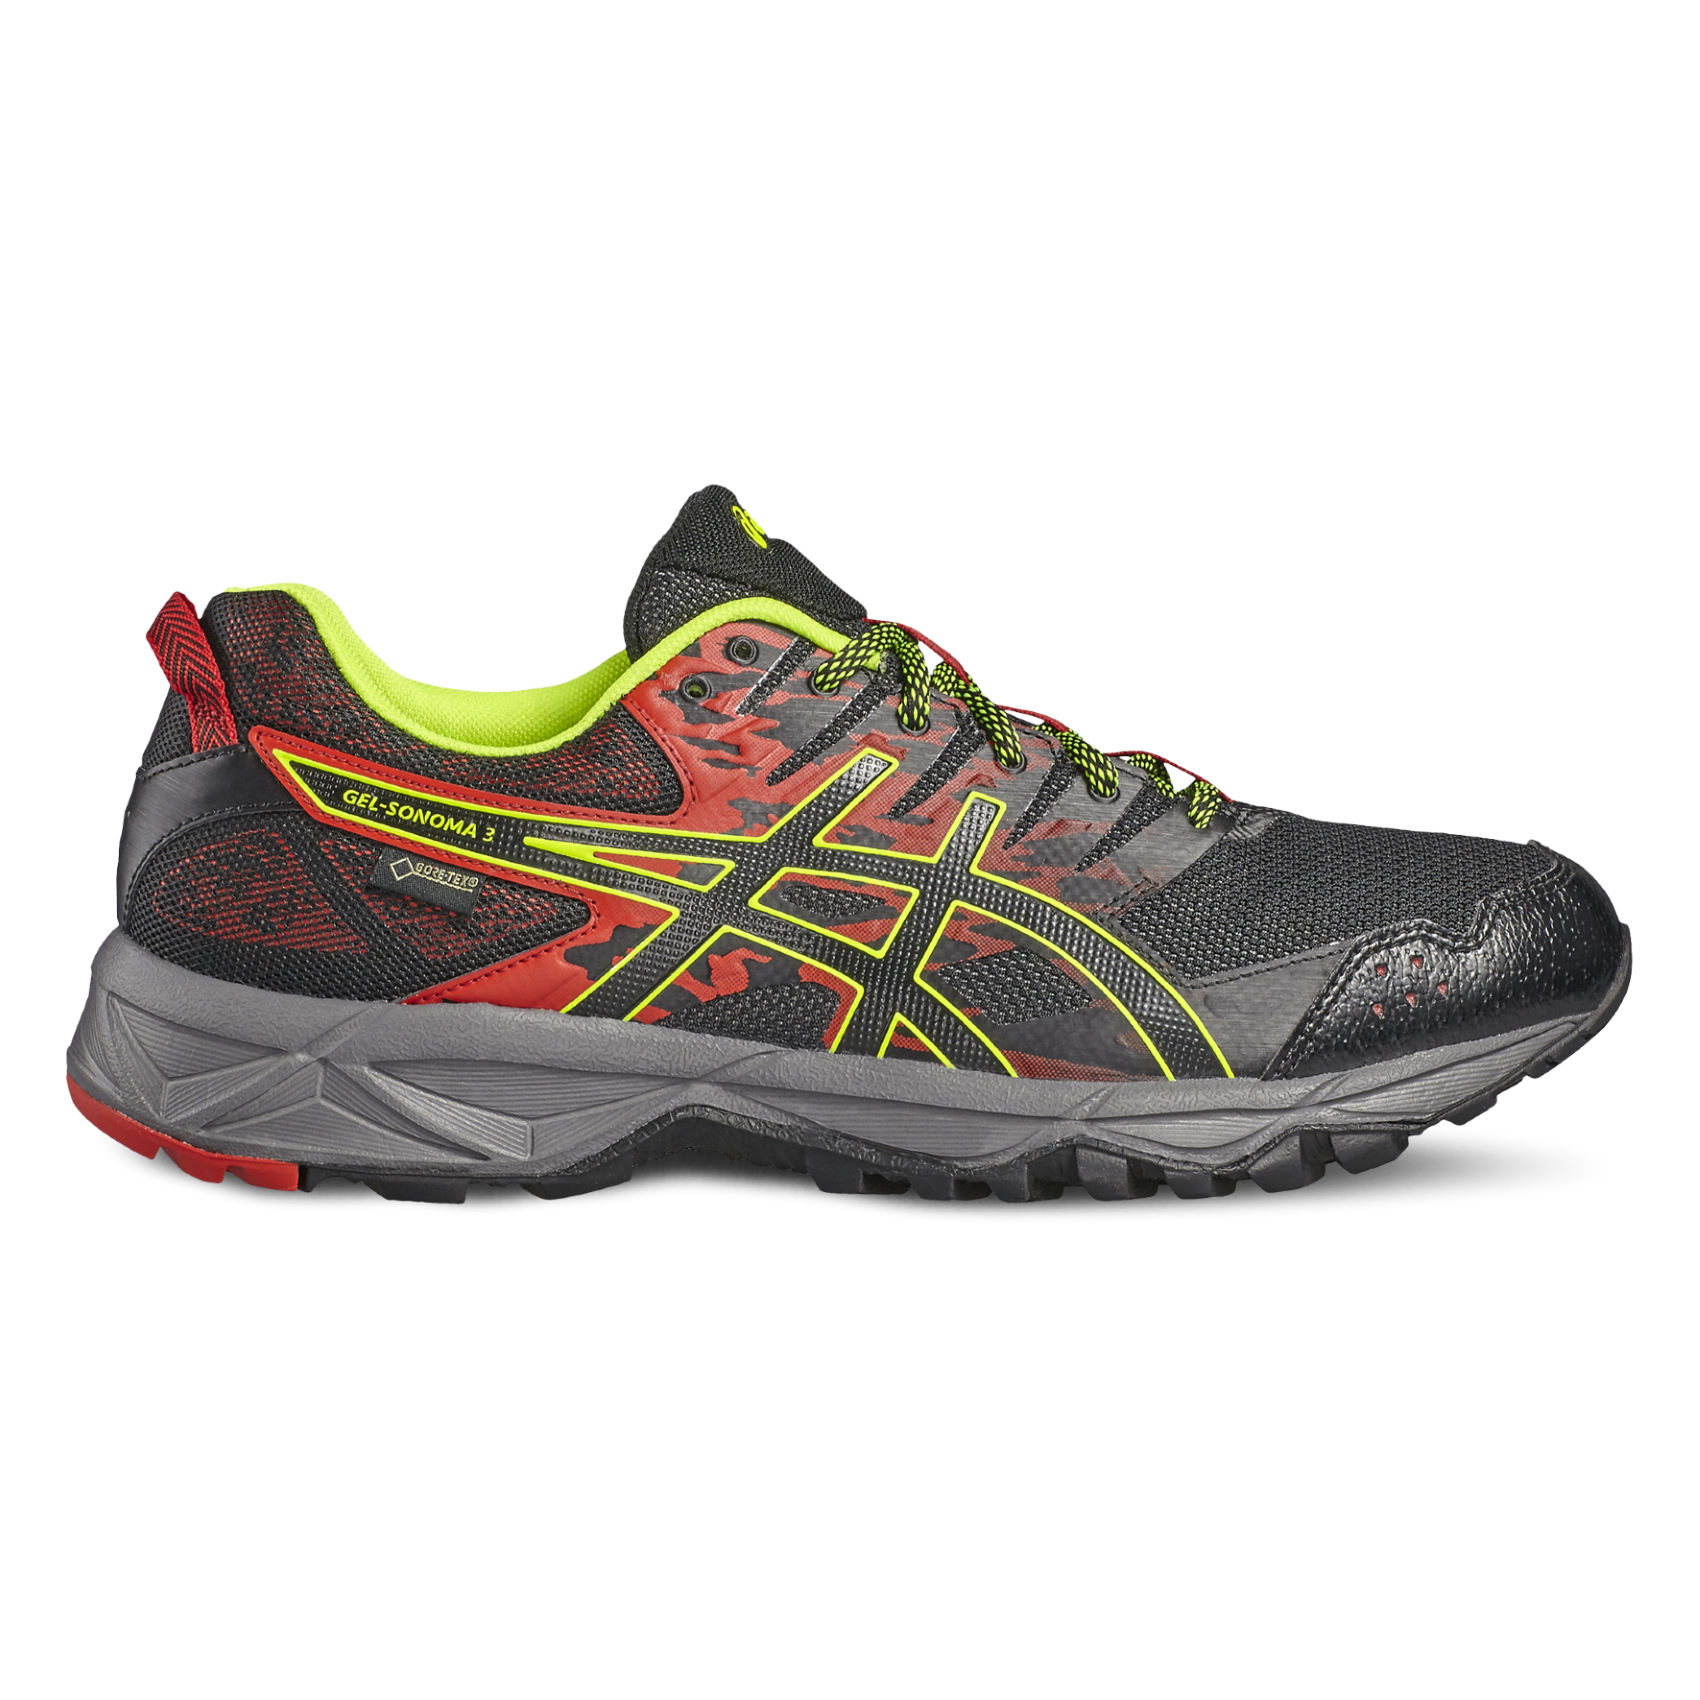 chaussures de running trail asics gel sonoma 3 gtx shoes wiggle france. Black Bedroom Furniture Sets. Home Design Ideas